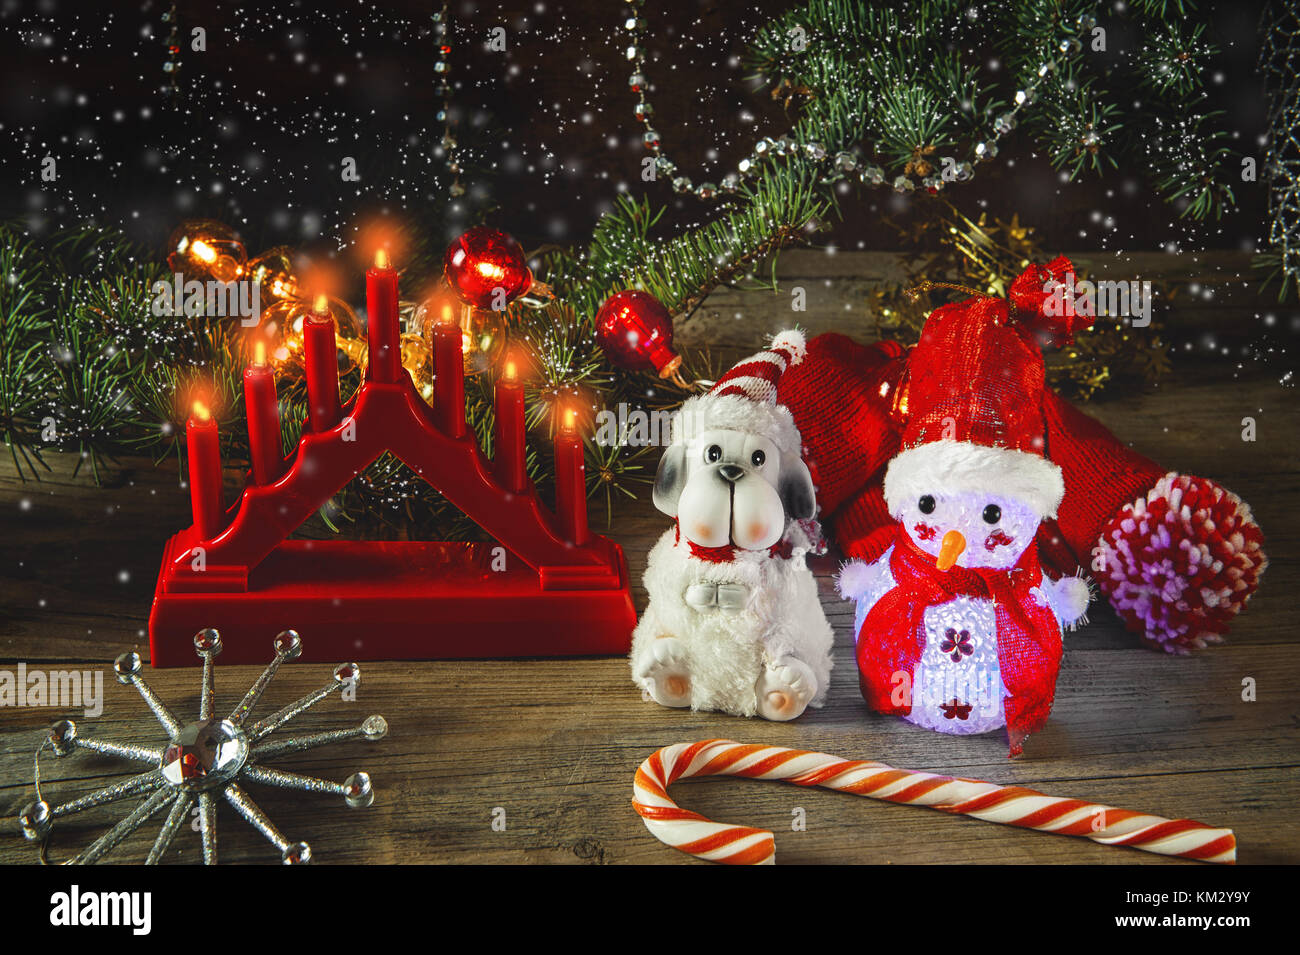 cosy christmas tree stockfotos cosy christmas tree bilder alamy. Black Bedroom Furniture Sets. Home Design Ideas